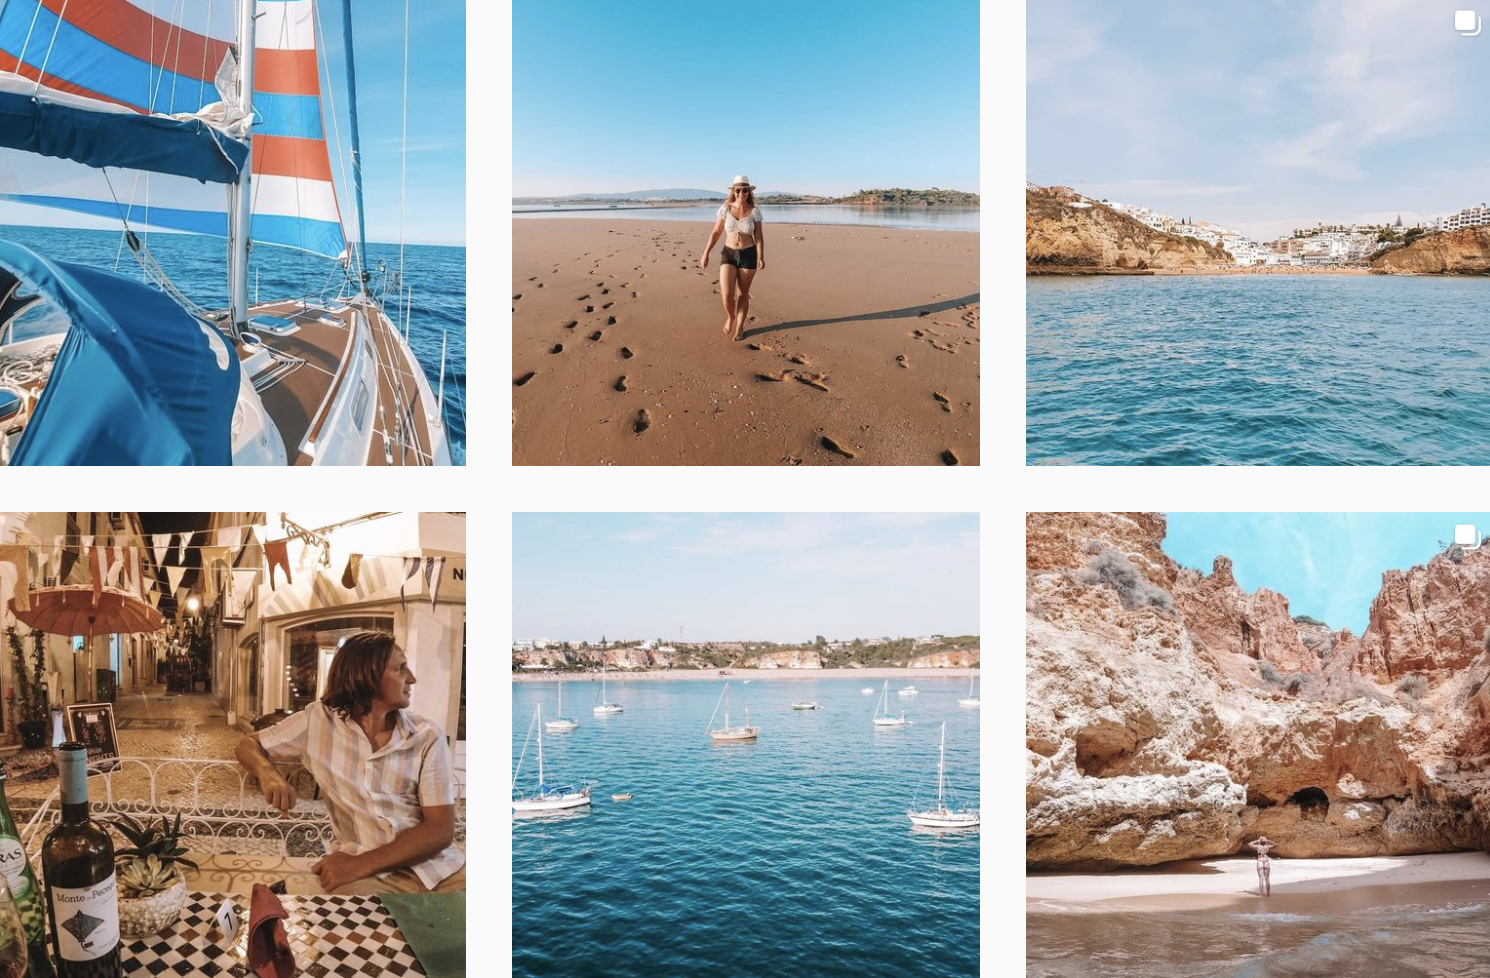 Capture from Katelin & Andrew's Instagram 'A Nautical Change'